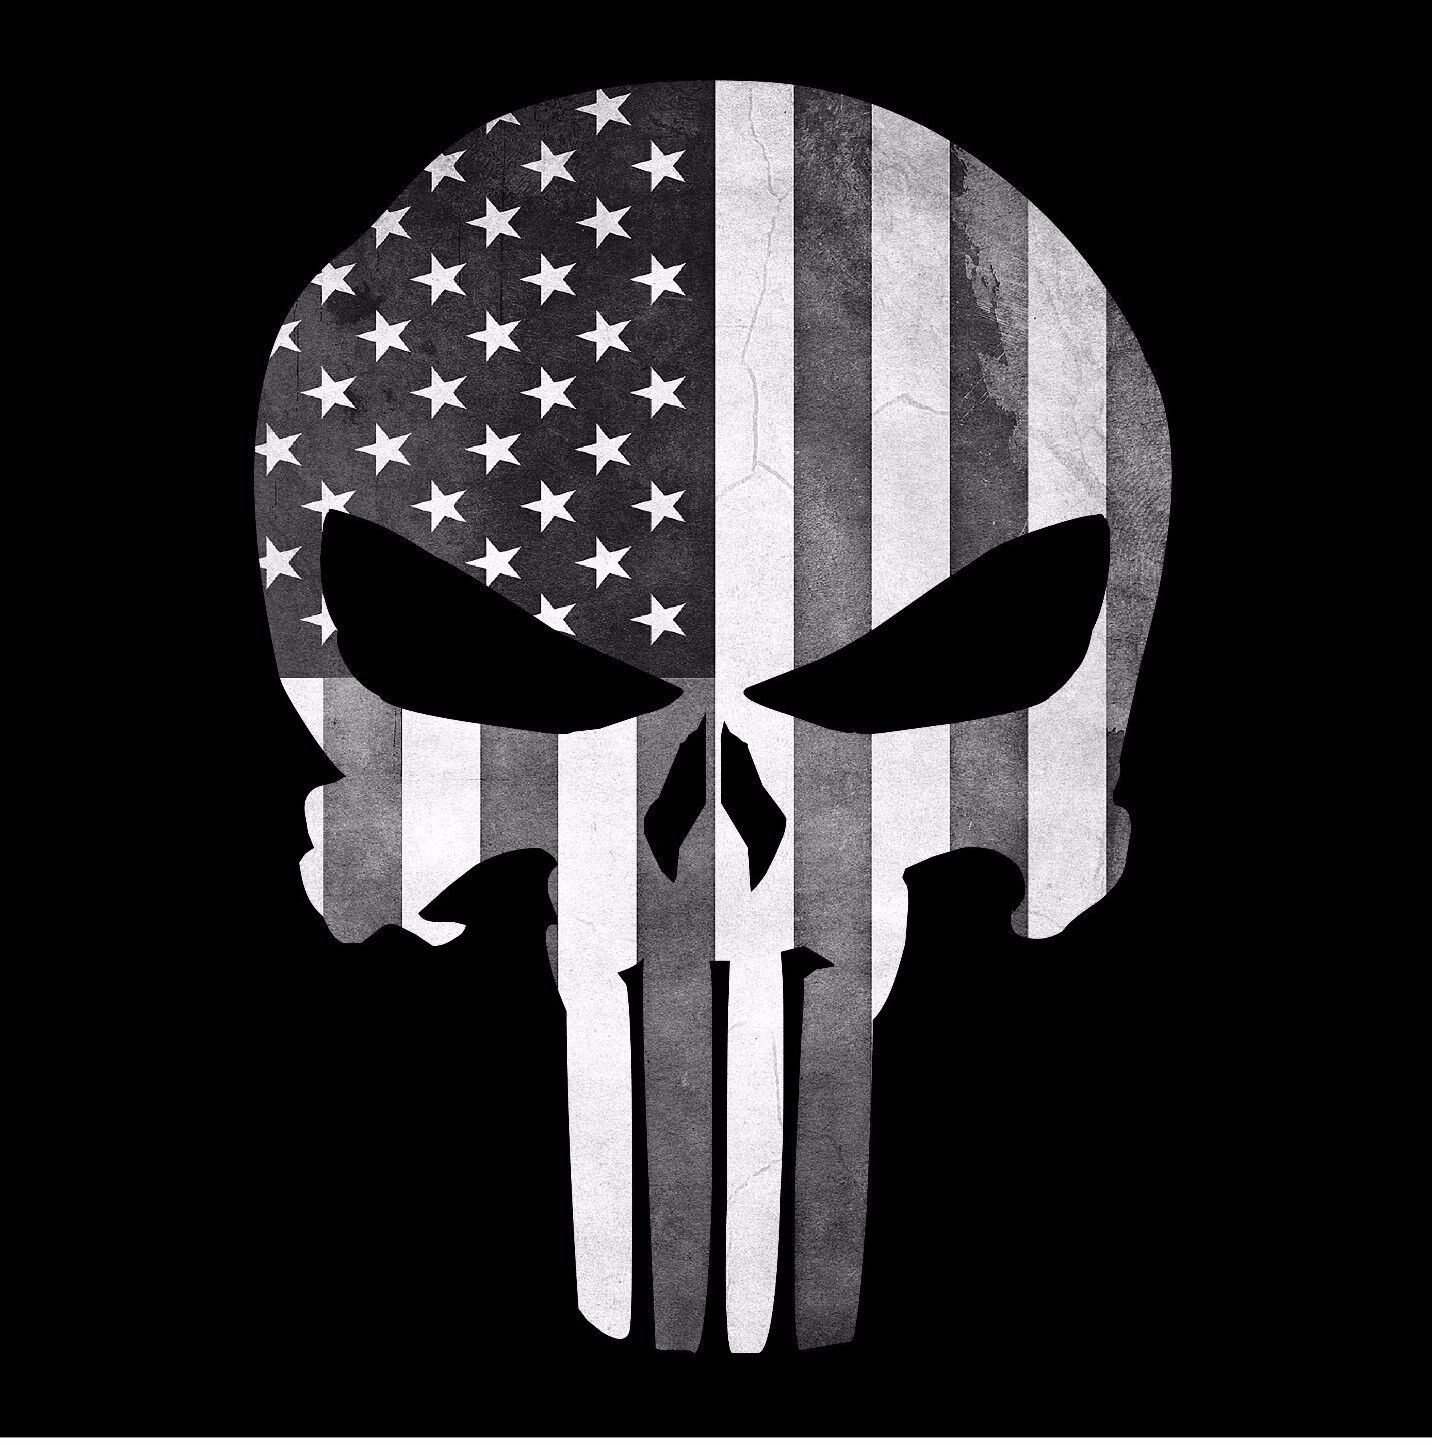 Punisher Skull American Flag Black And White Decal